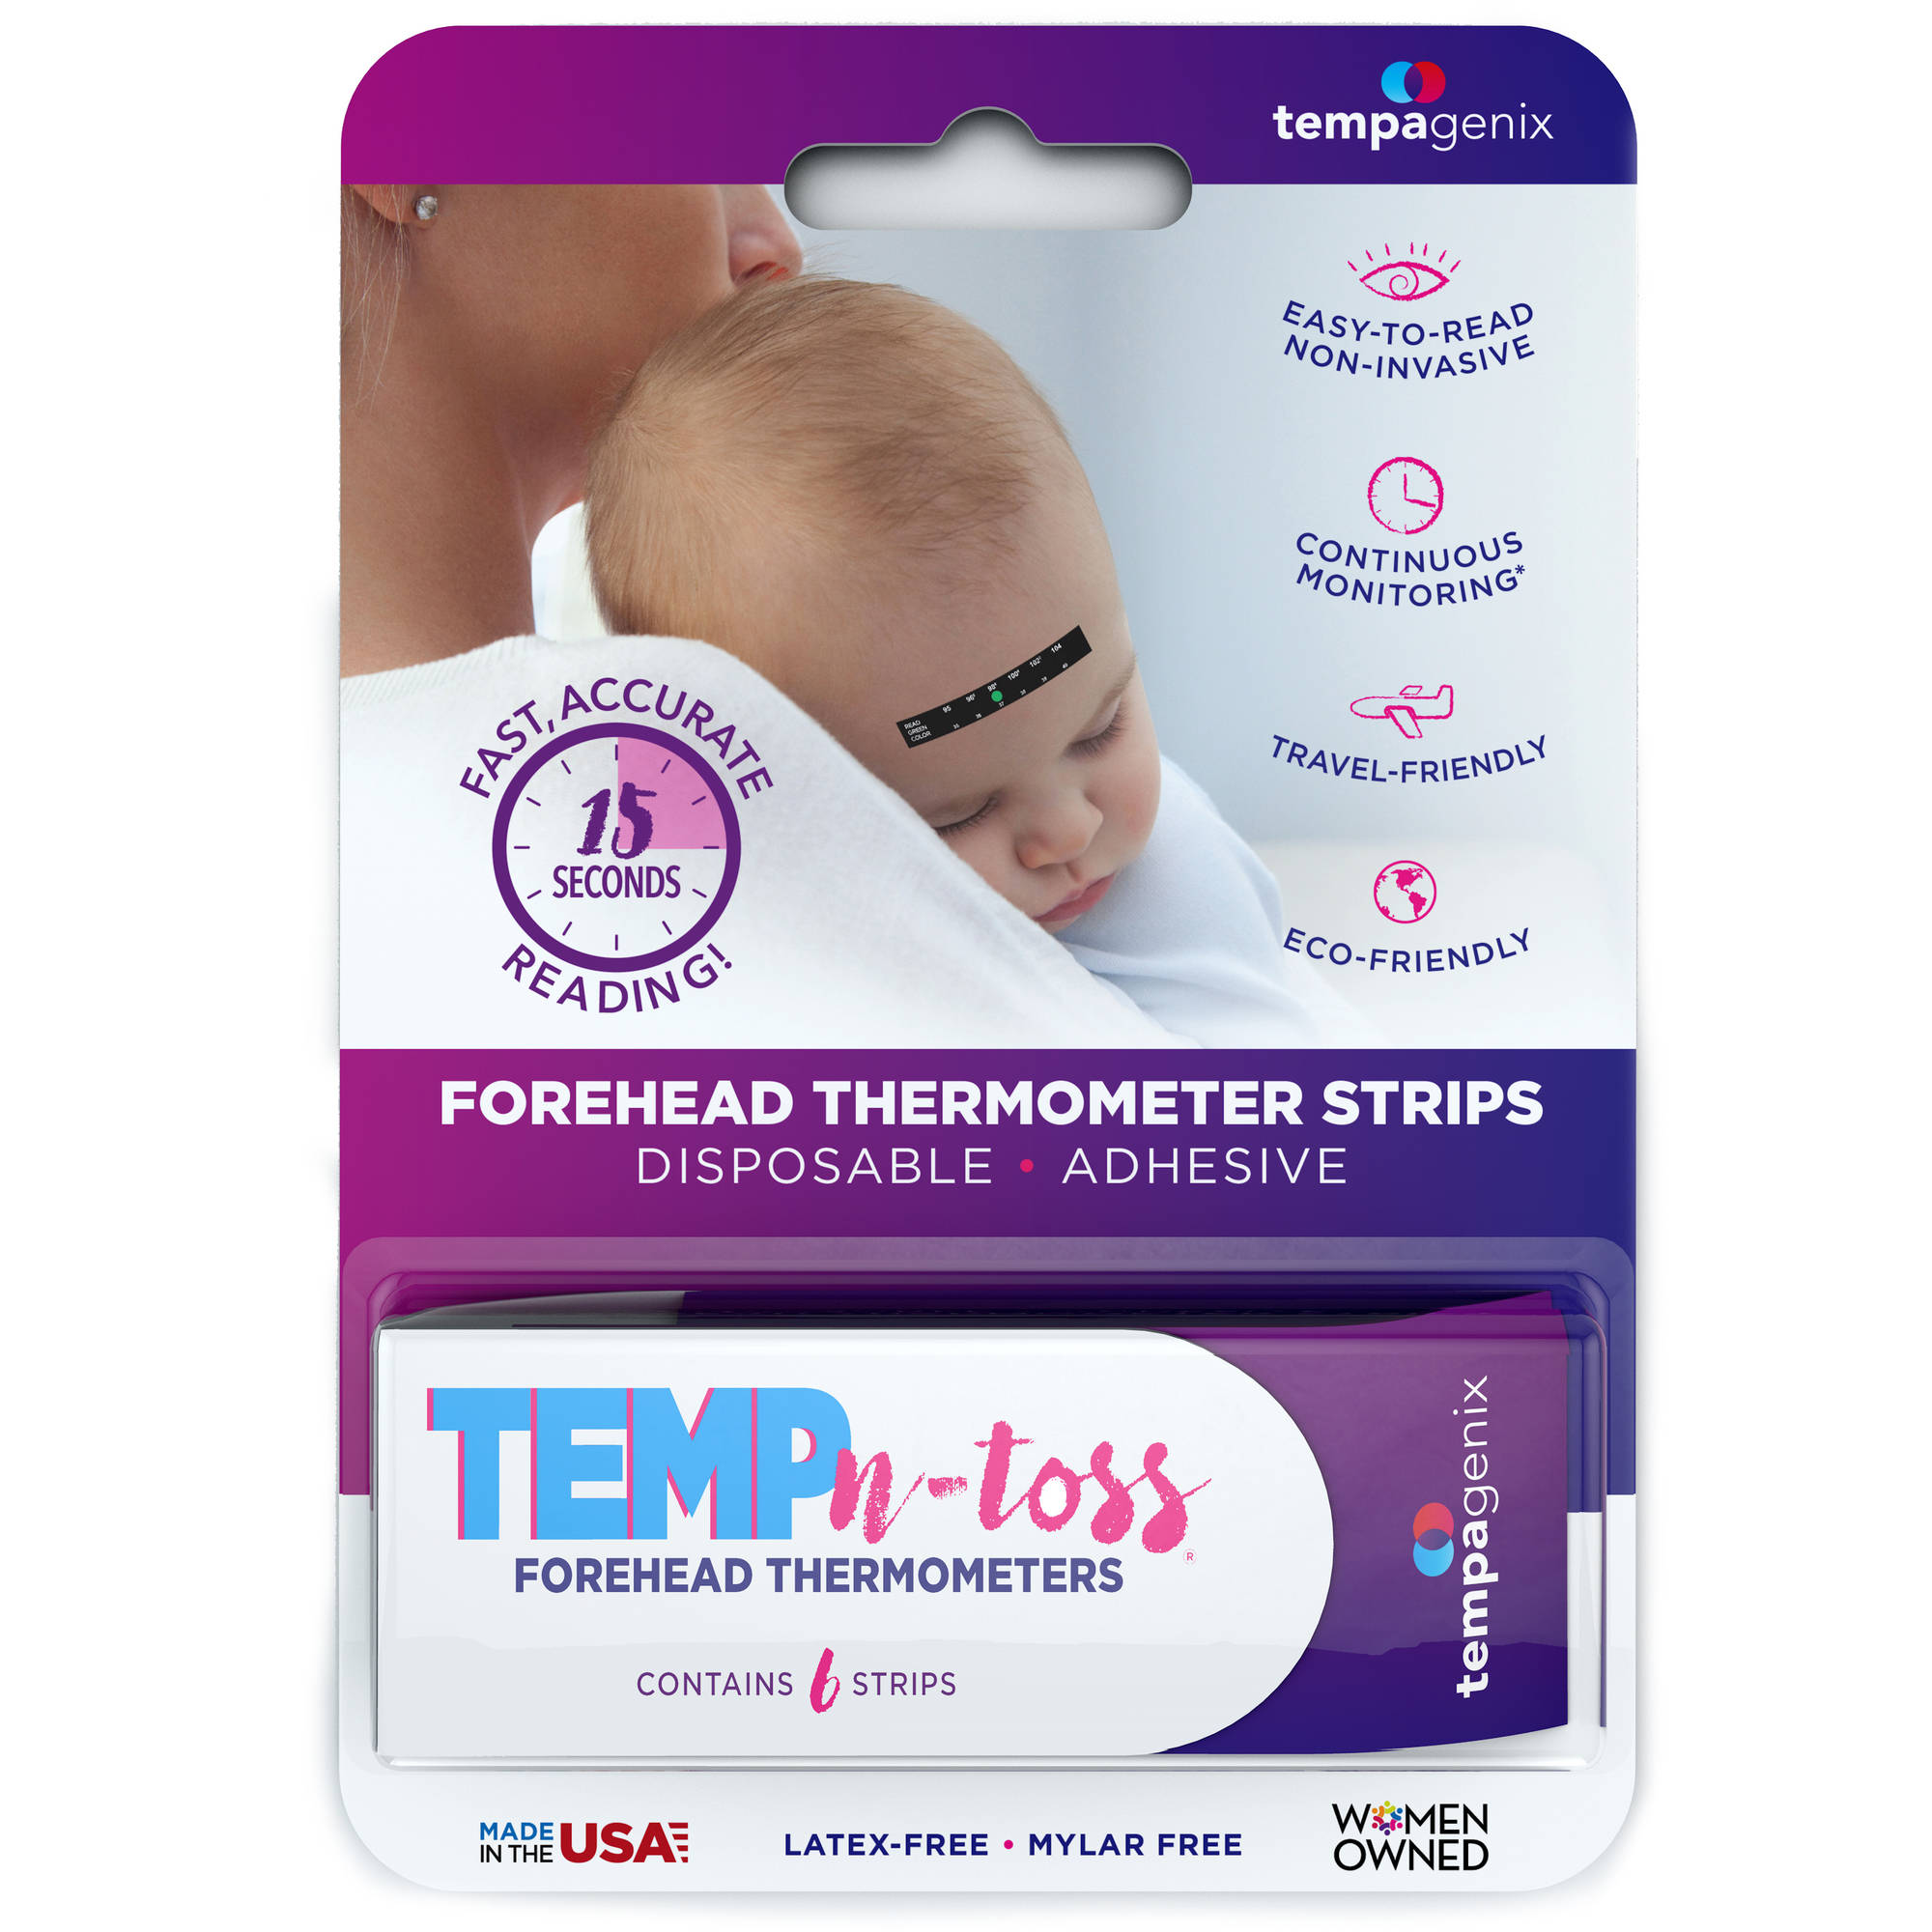 Temp-N-Toss Disposable Forehead Thermometer Strips